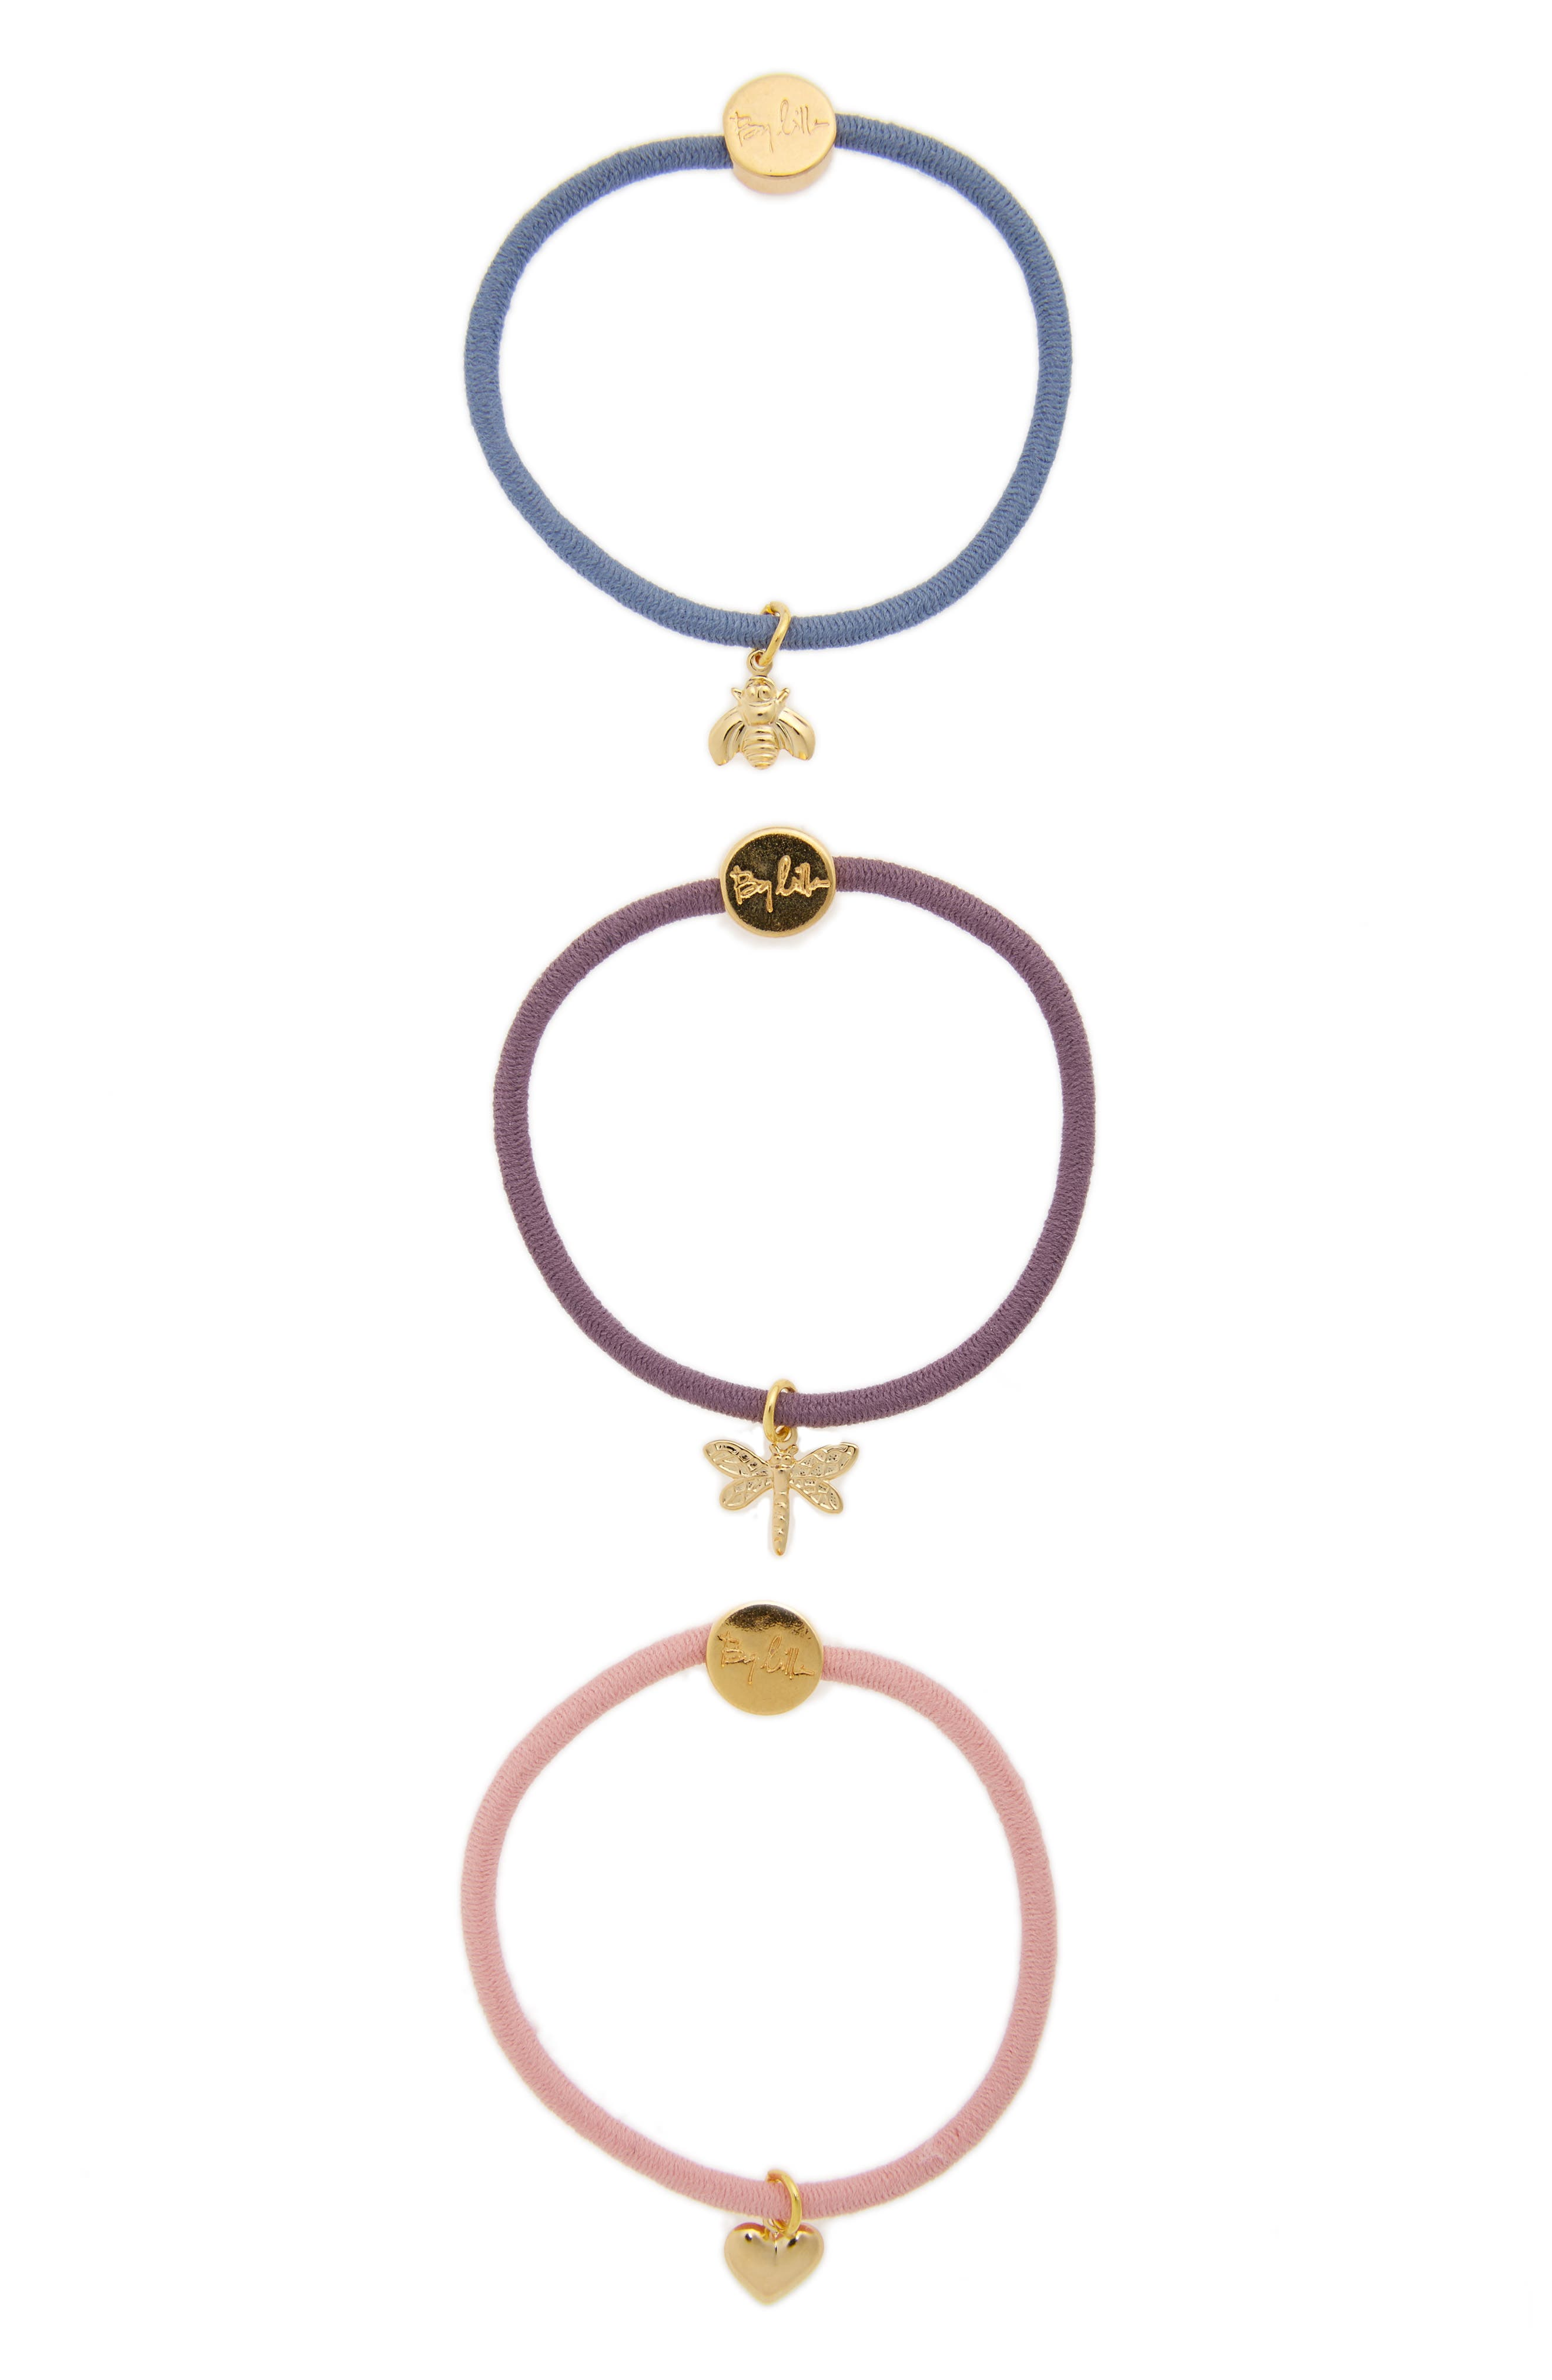 BY LILLA Message Set of 3 Charm Hair Elastics